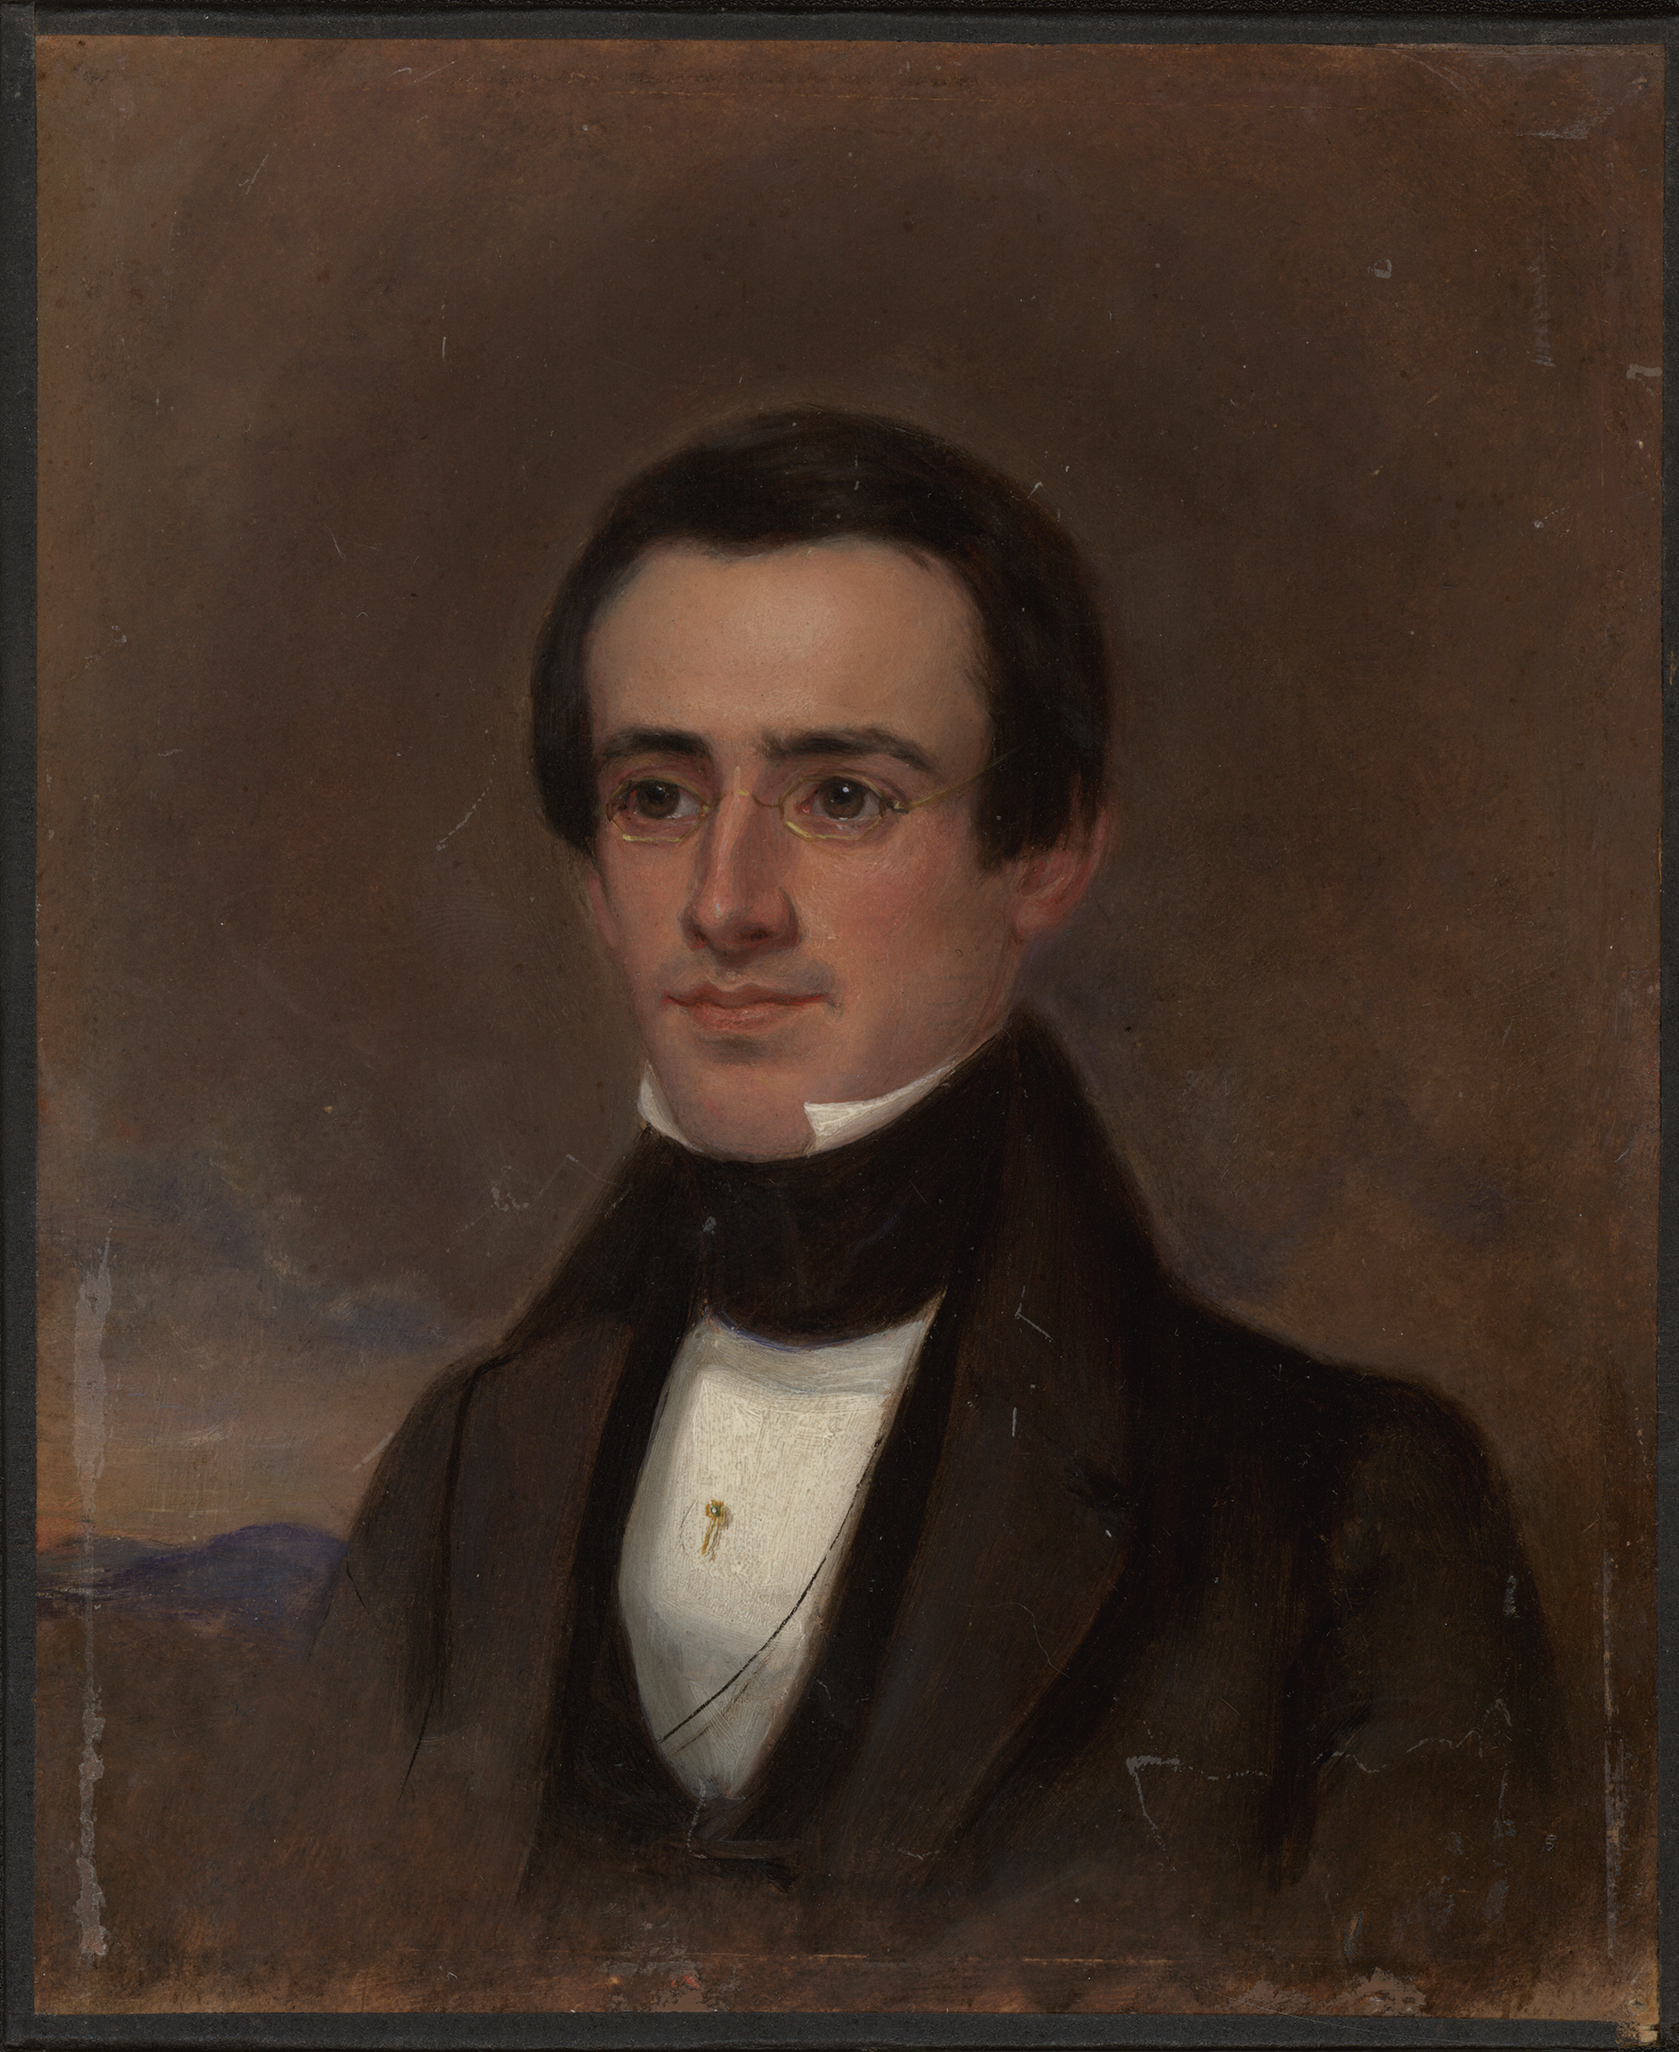 Dr. Henry Bond left the Society its first bequest in 1859.